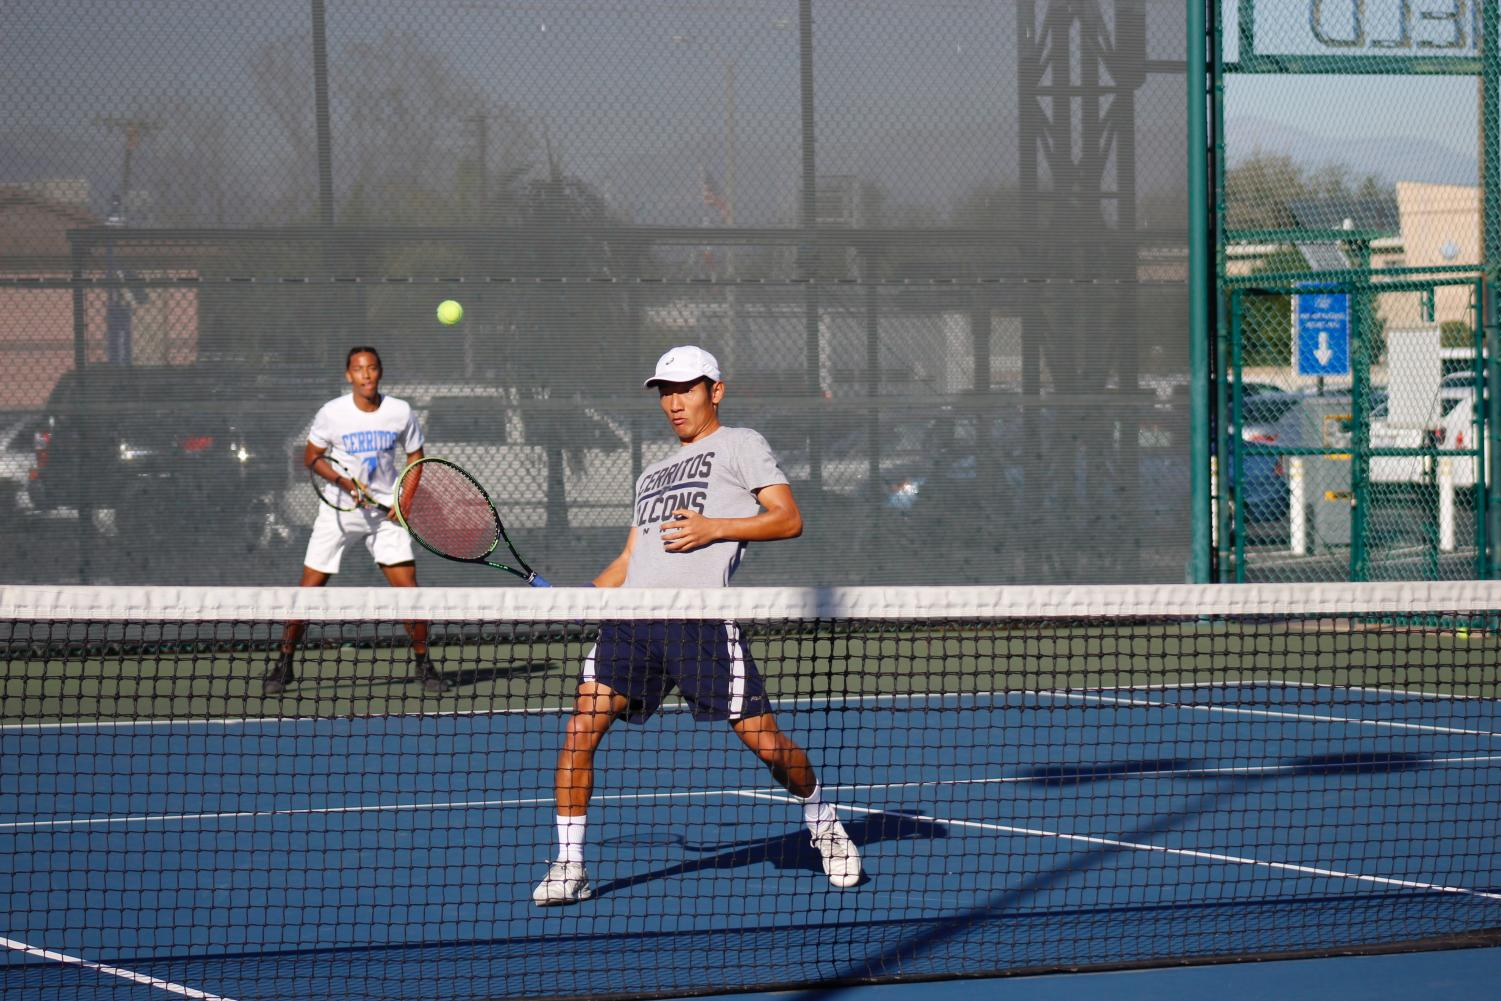 Freshman, Kent Hunter and Sophomore Kwangeun Lee during their doubles match. Lee raises his racket for a quick save.